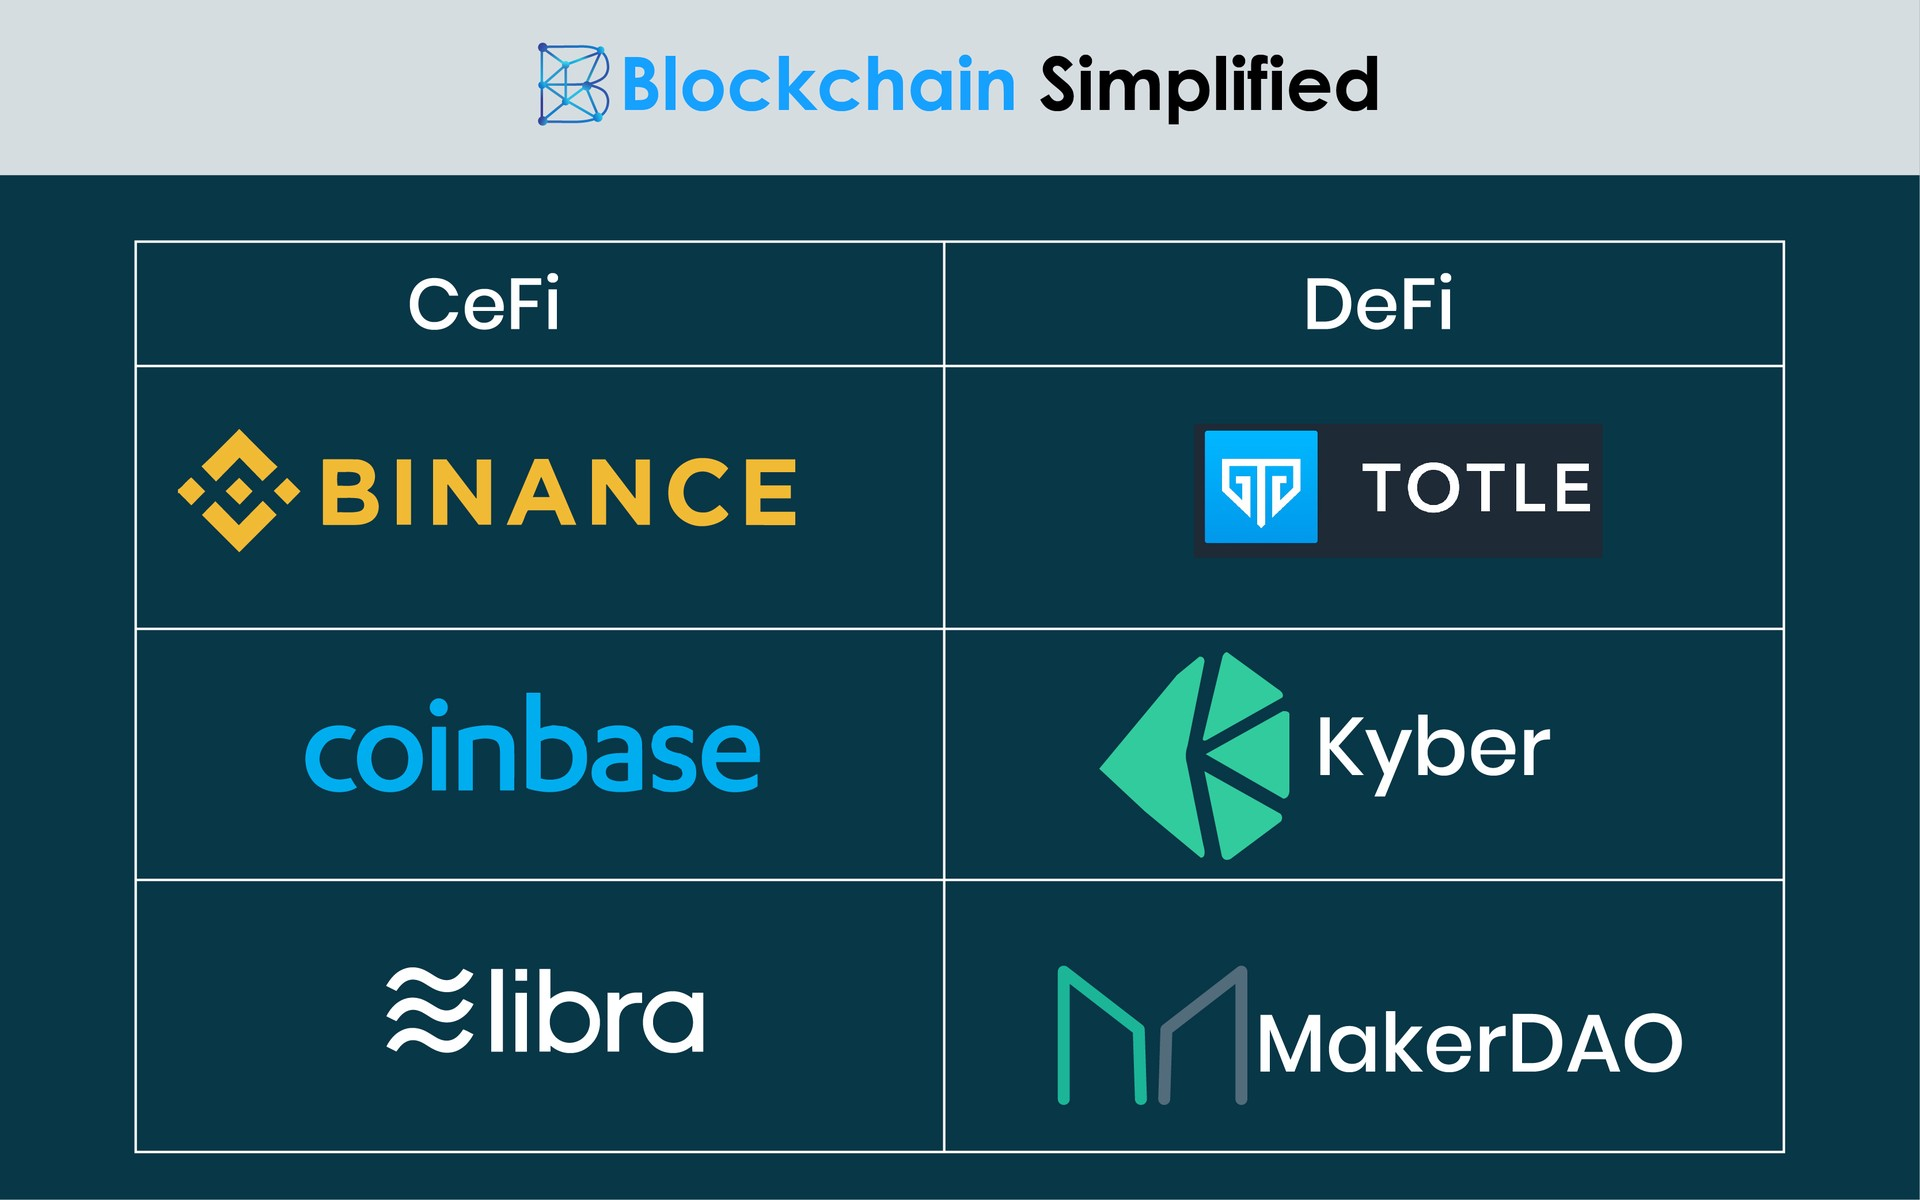 Decentralized Finance (DeFi) vs Centralized Finance (CeFi) examples